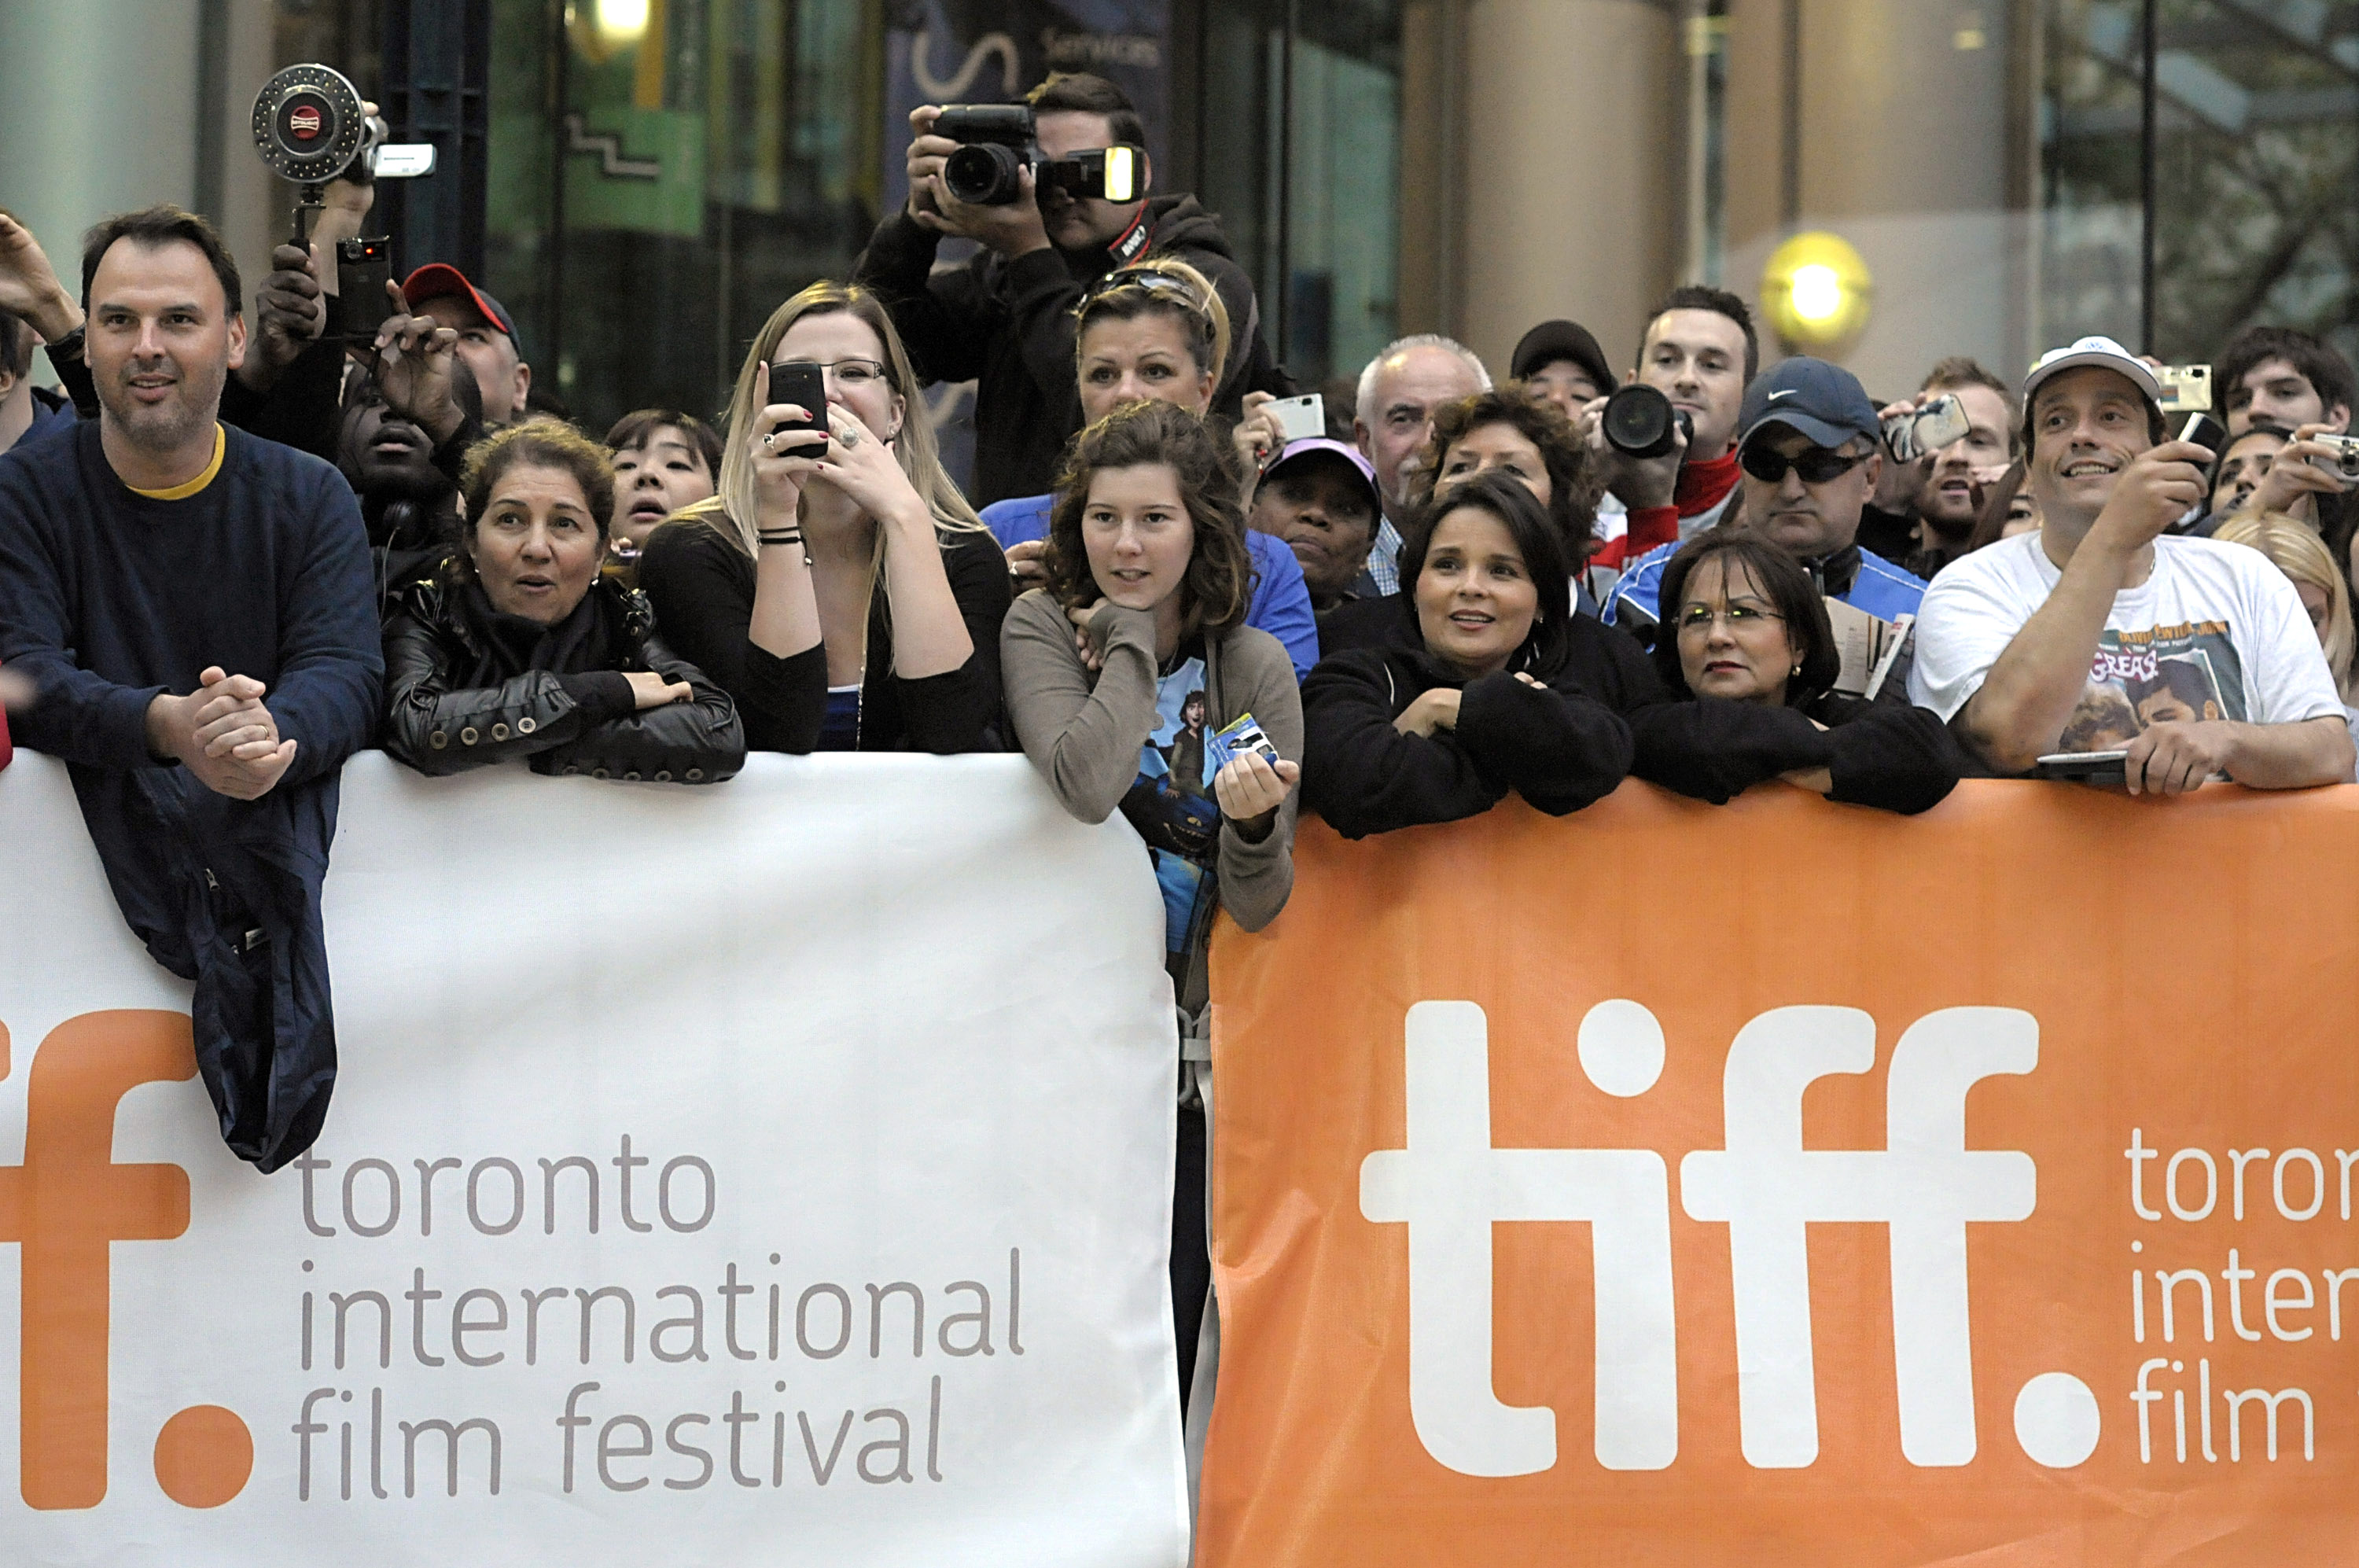 Fans watch as celebrities arrive at the Toronto International Film Festival opening night premiere of the feature film 'Score: A Hockey Musical' in To...